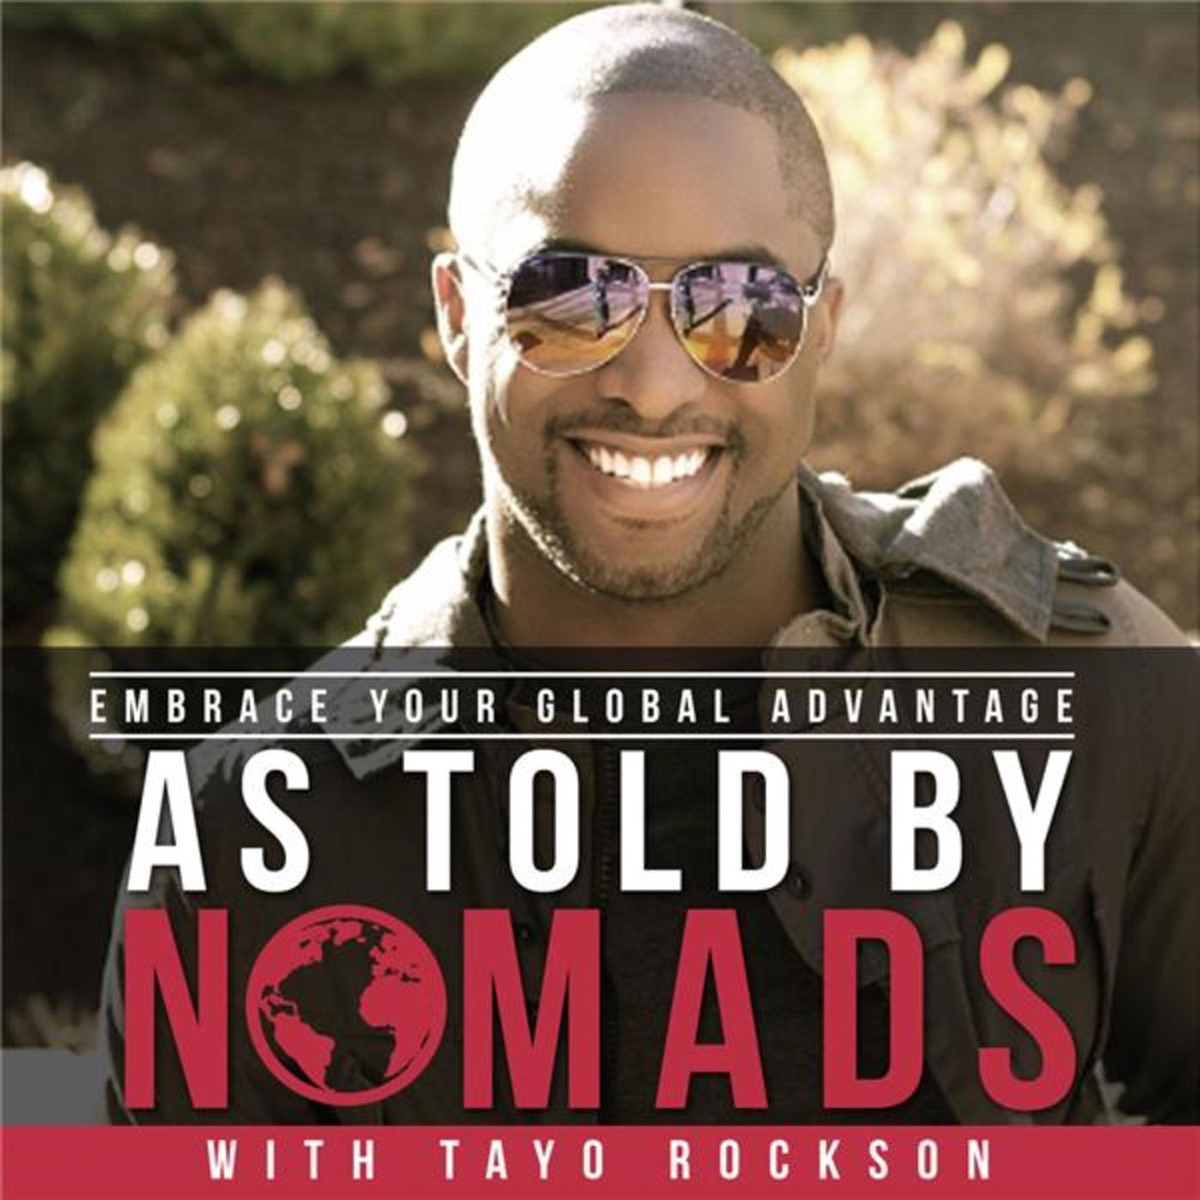 549: The Accidental Nomad With Kyle Hegarty